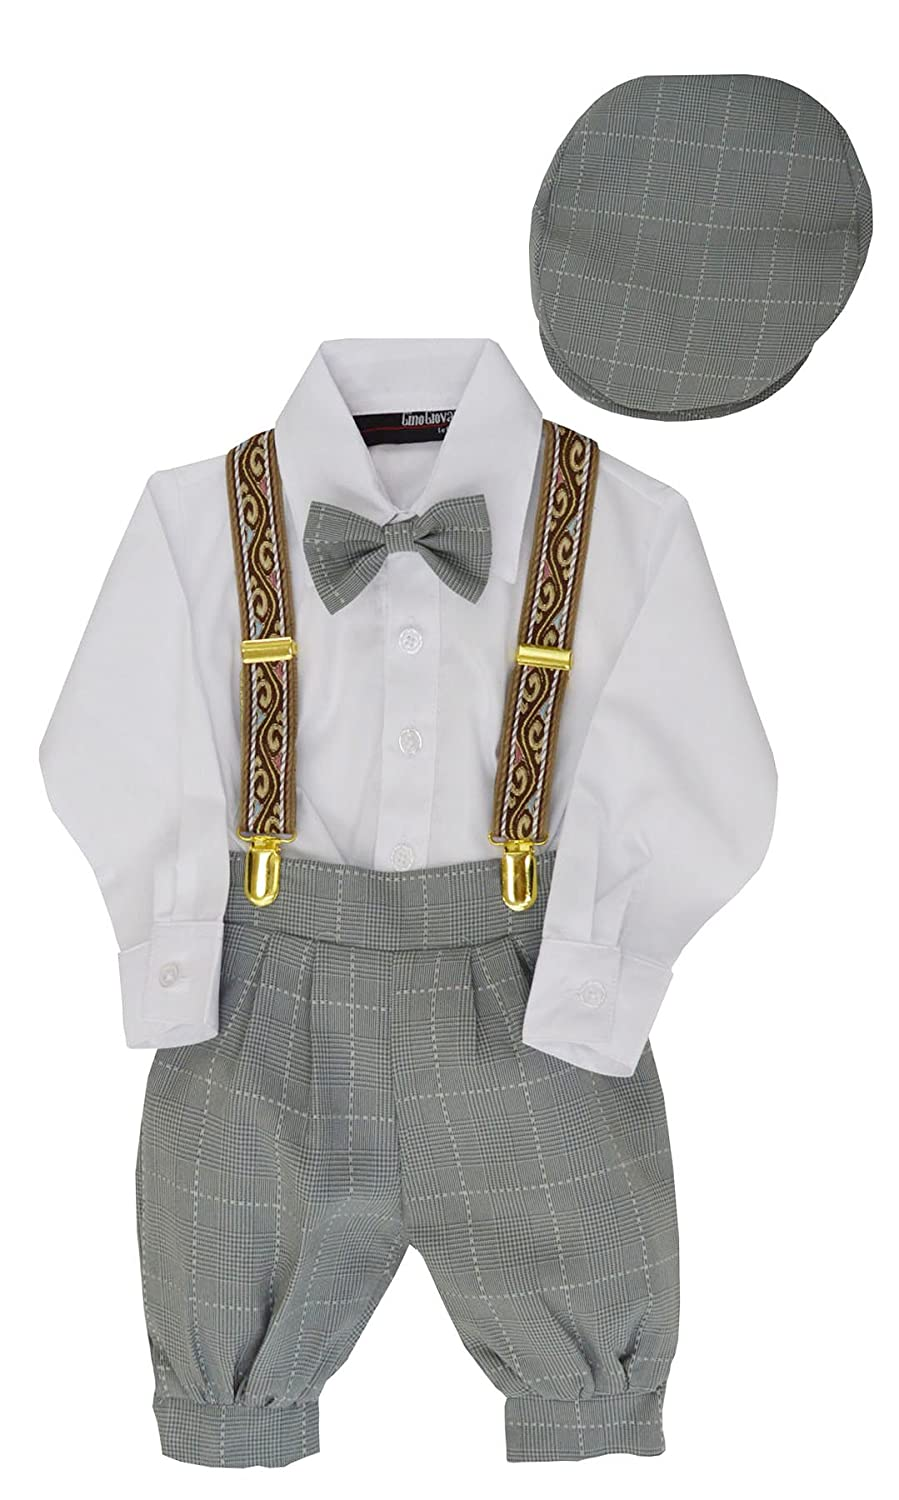 1930s Childrens Fashion Girls Boys Toddler Baby Costumes